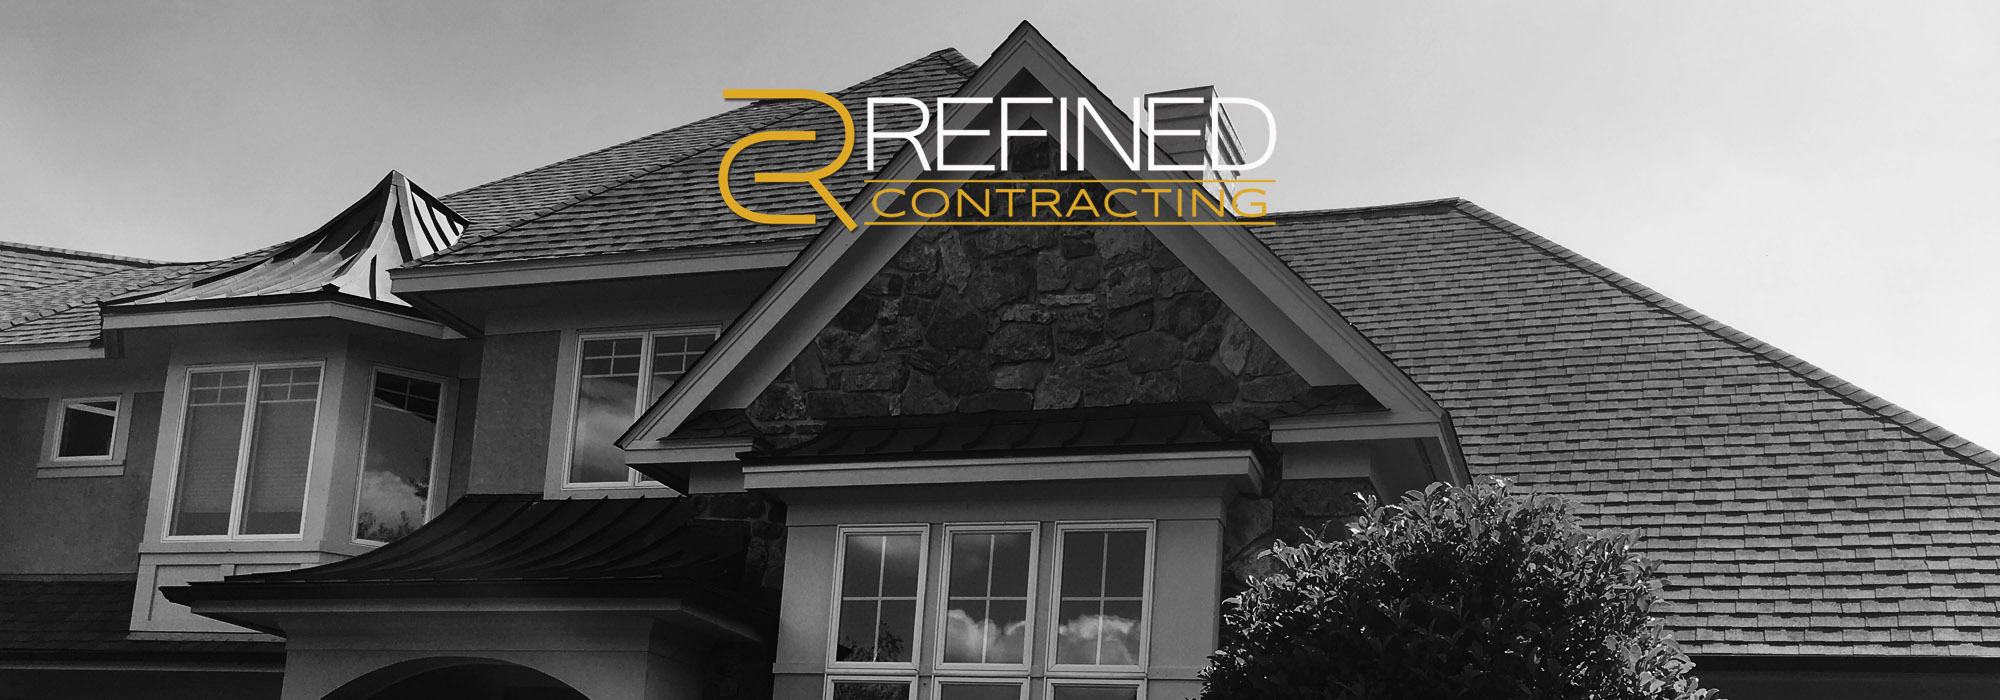 Refined Contracting replaces residential roofs throughout the Twin Cities of MN and Denver, CO.